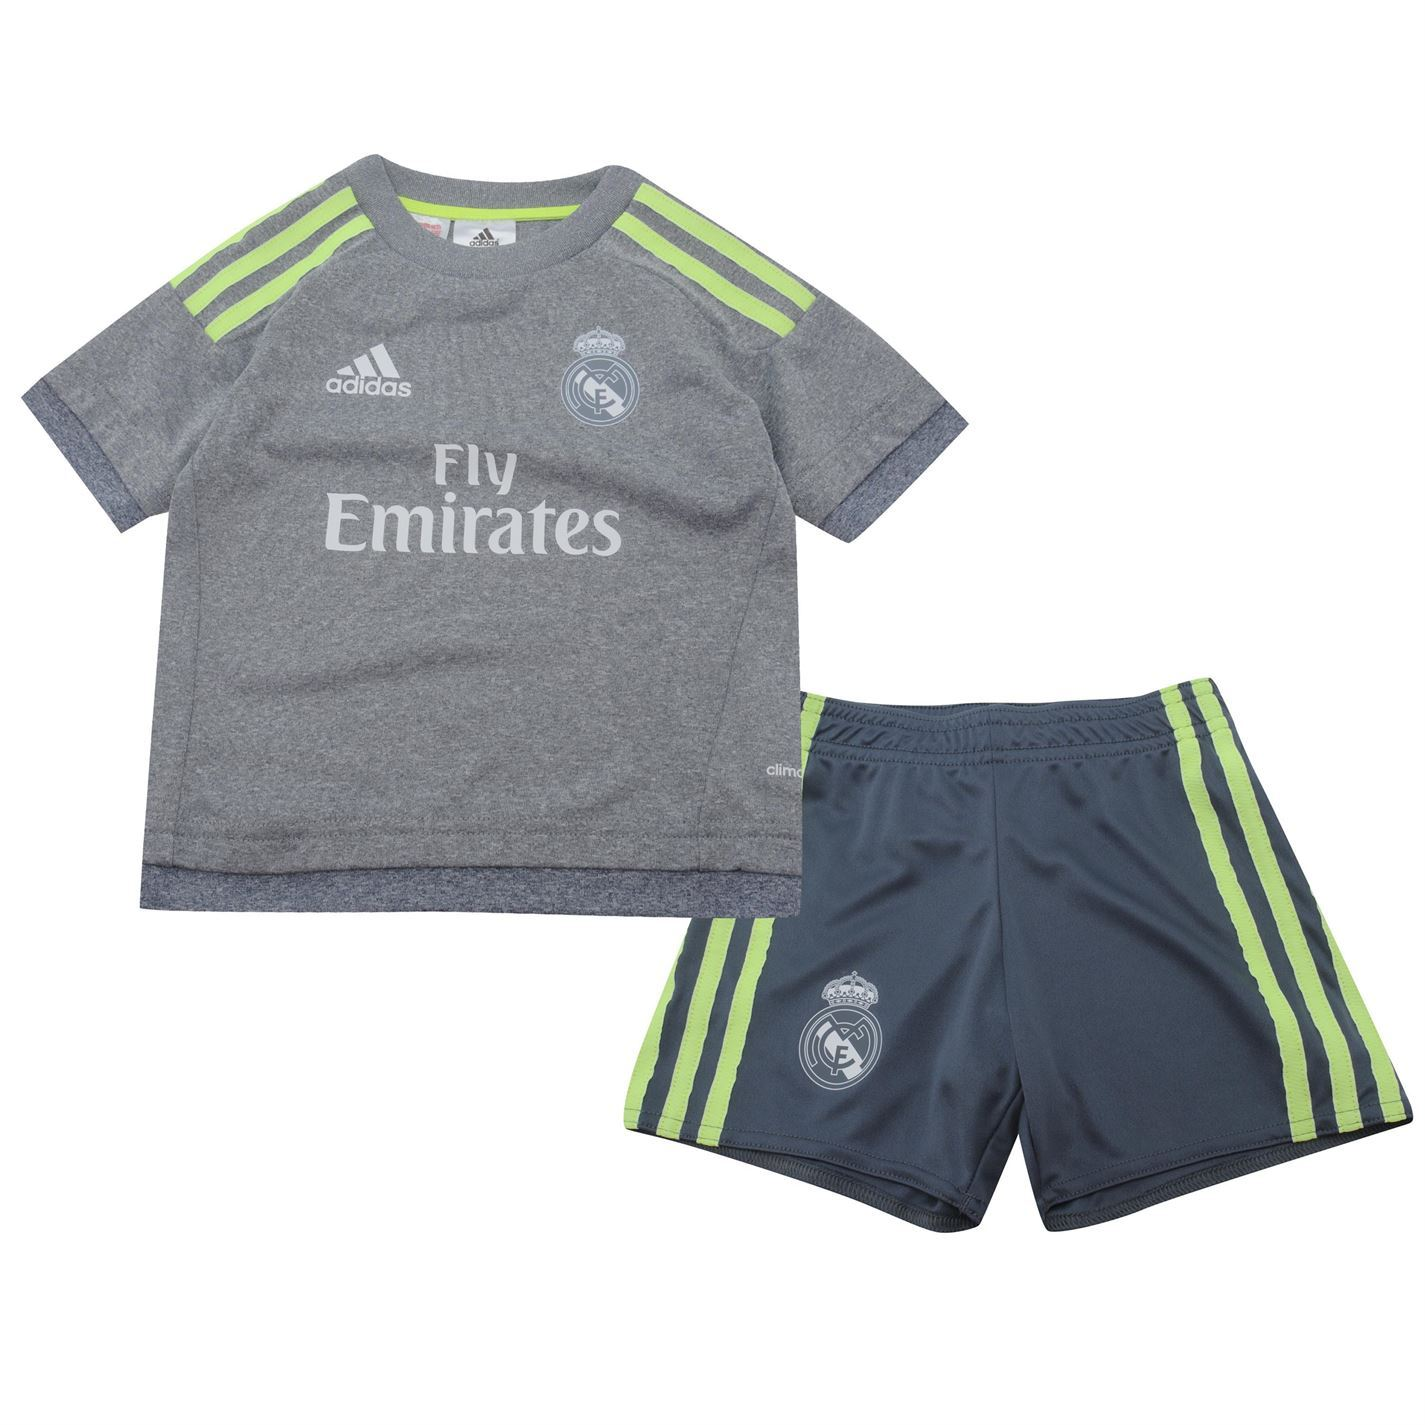 adidas kids real madrid away kit 2015 2016 mini t shirt shorts tee top ebay. Black Bedroom Furniture Sets. Home Design Ideas